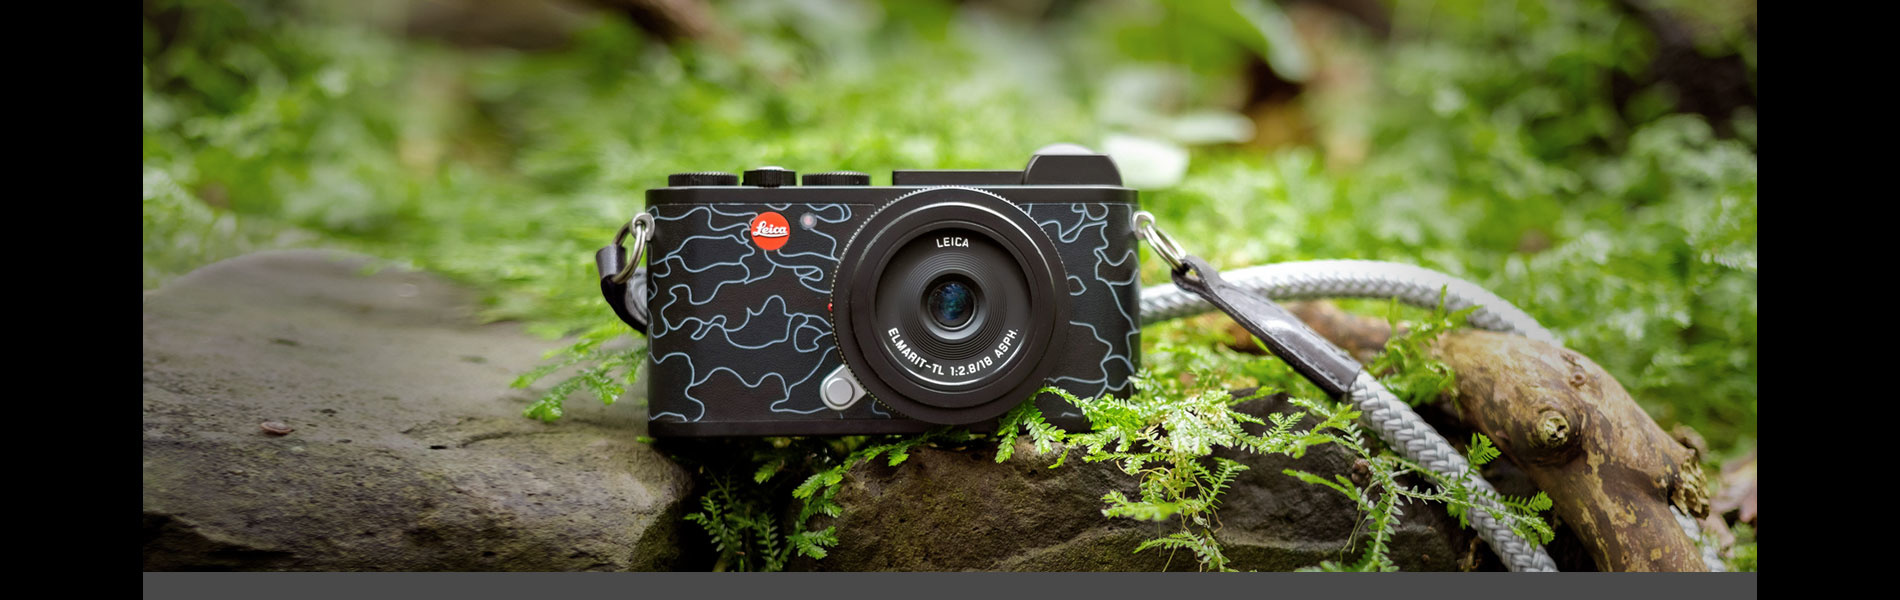 Leica CL Urban Jungle